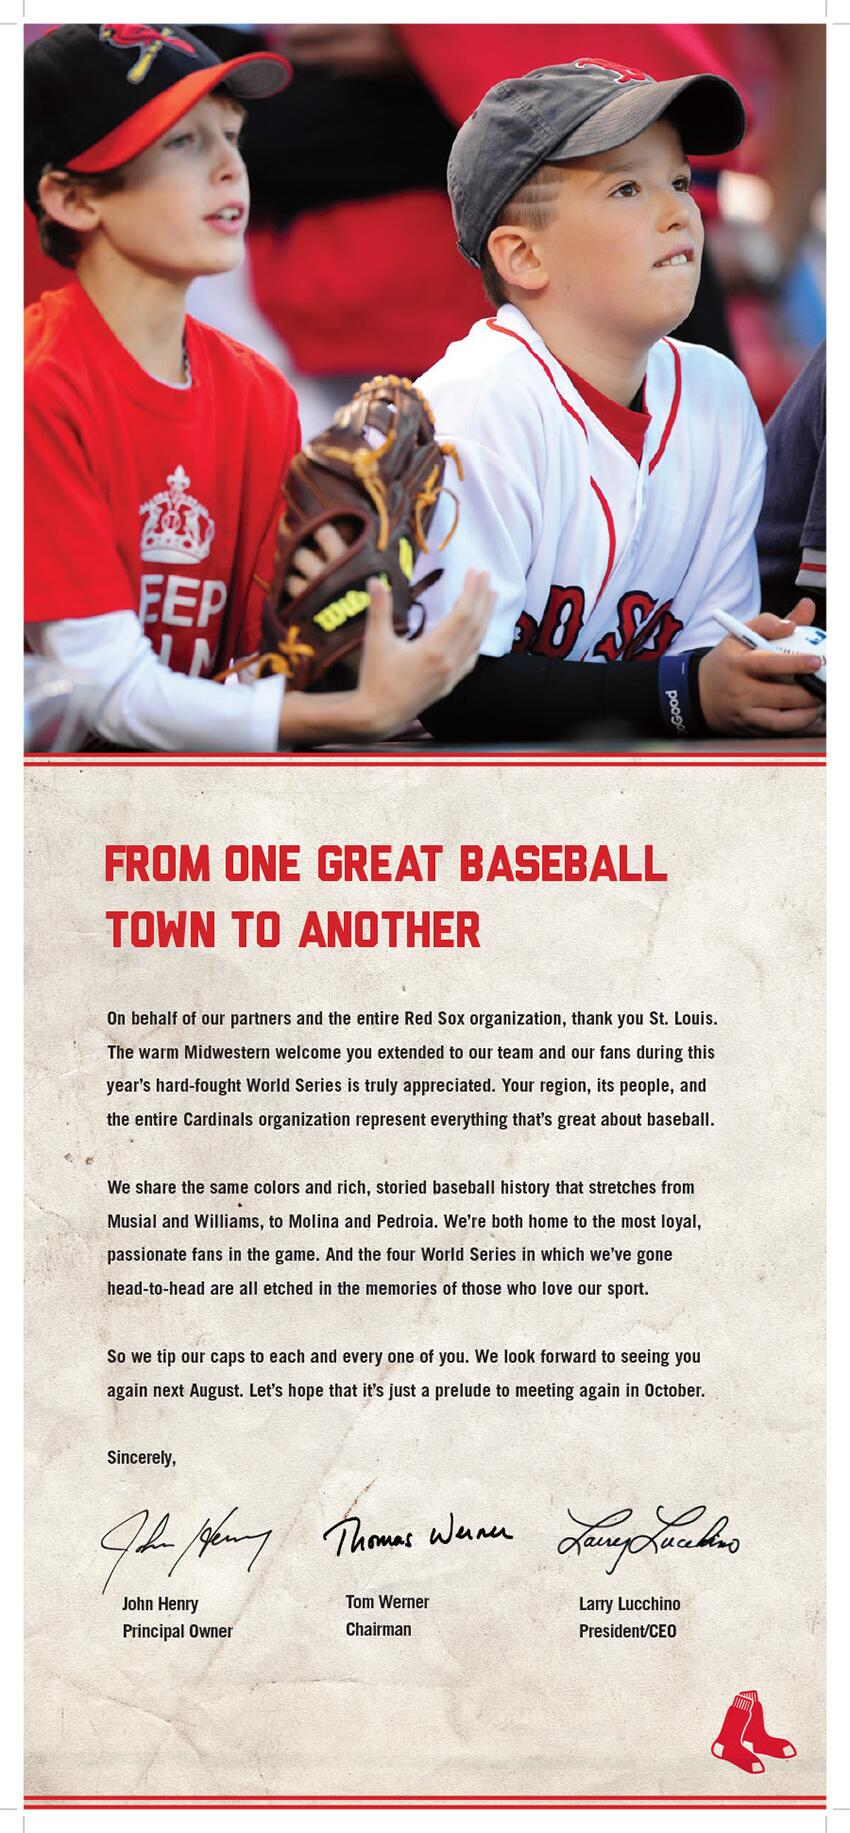 red sox full page ad thanking cardinals and st. louis